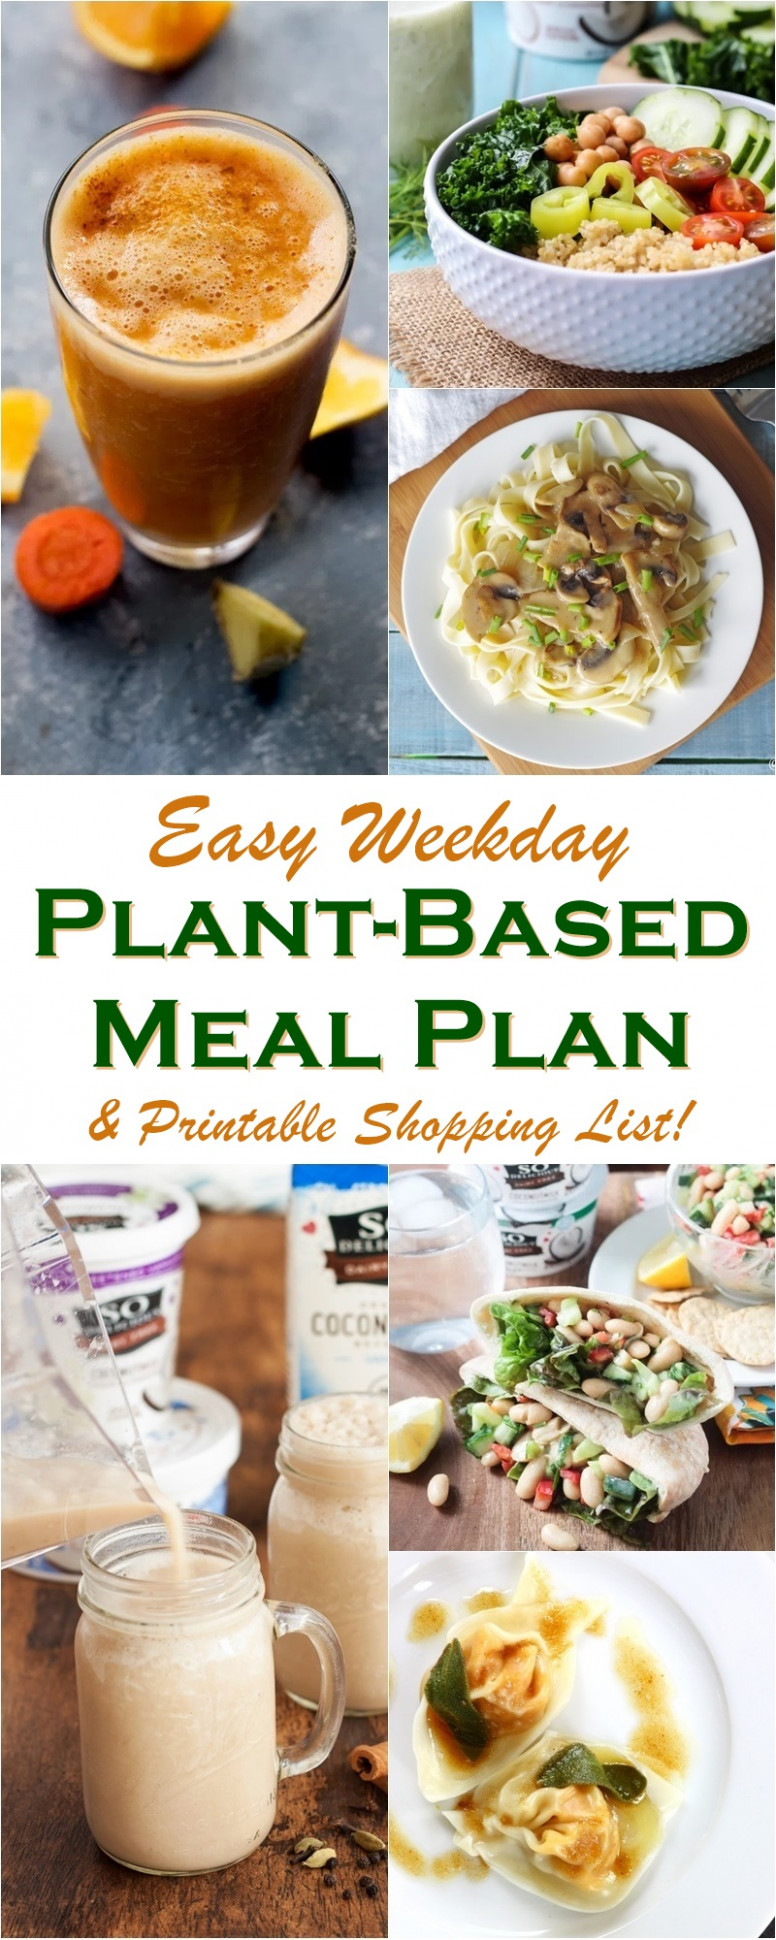 Easy Weekday Plant-Based Meal Plan + Shopping List - dinner recipes dairy and gluten free